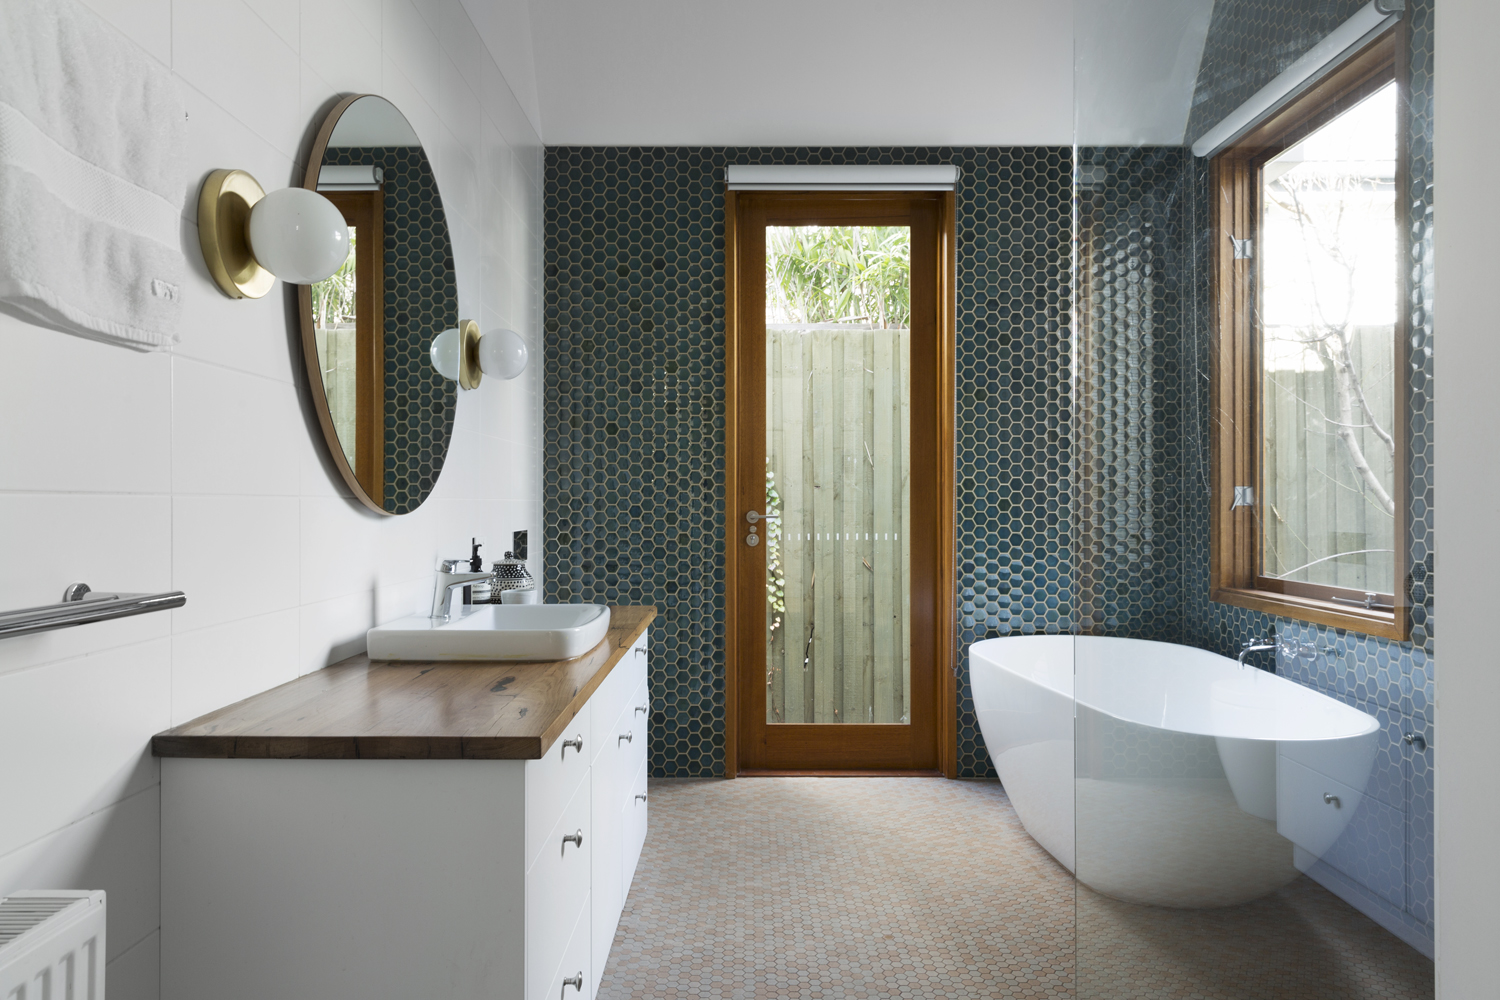 Clifton Hill house extension bathroom design by Melbourne interior designer and interior decorator Meredith Lee